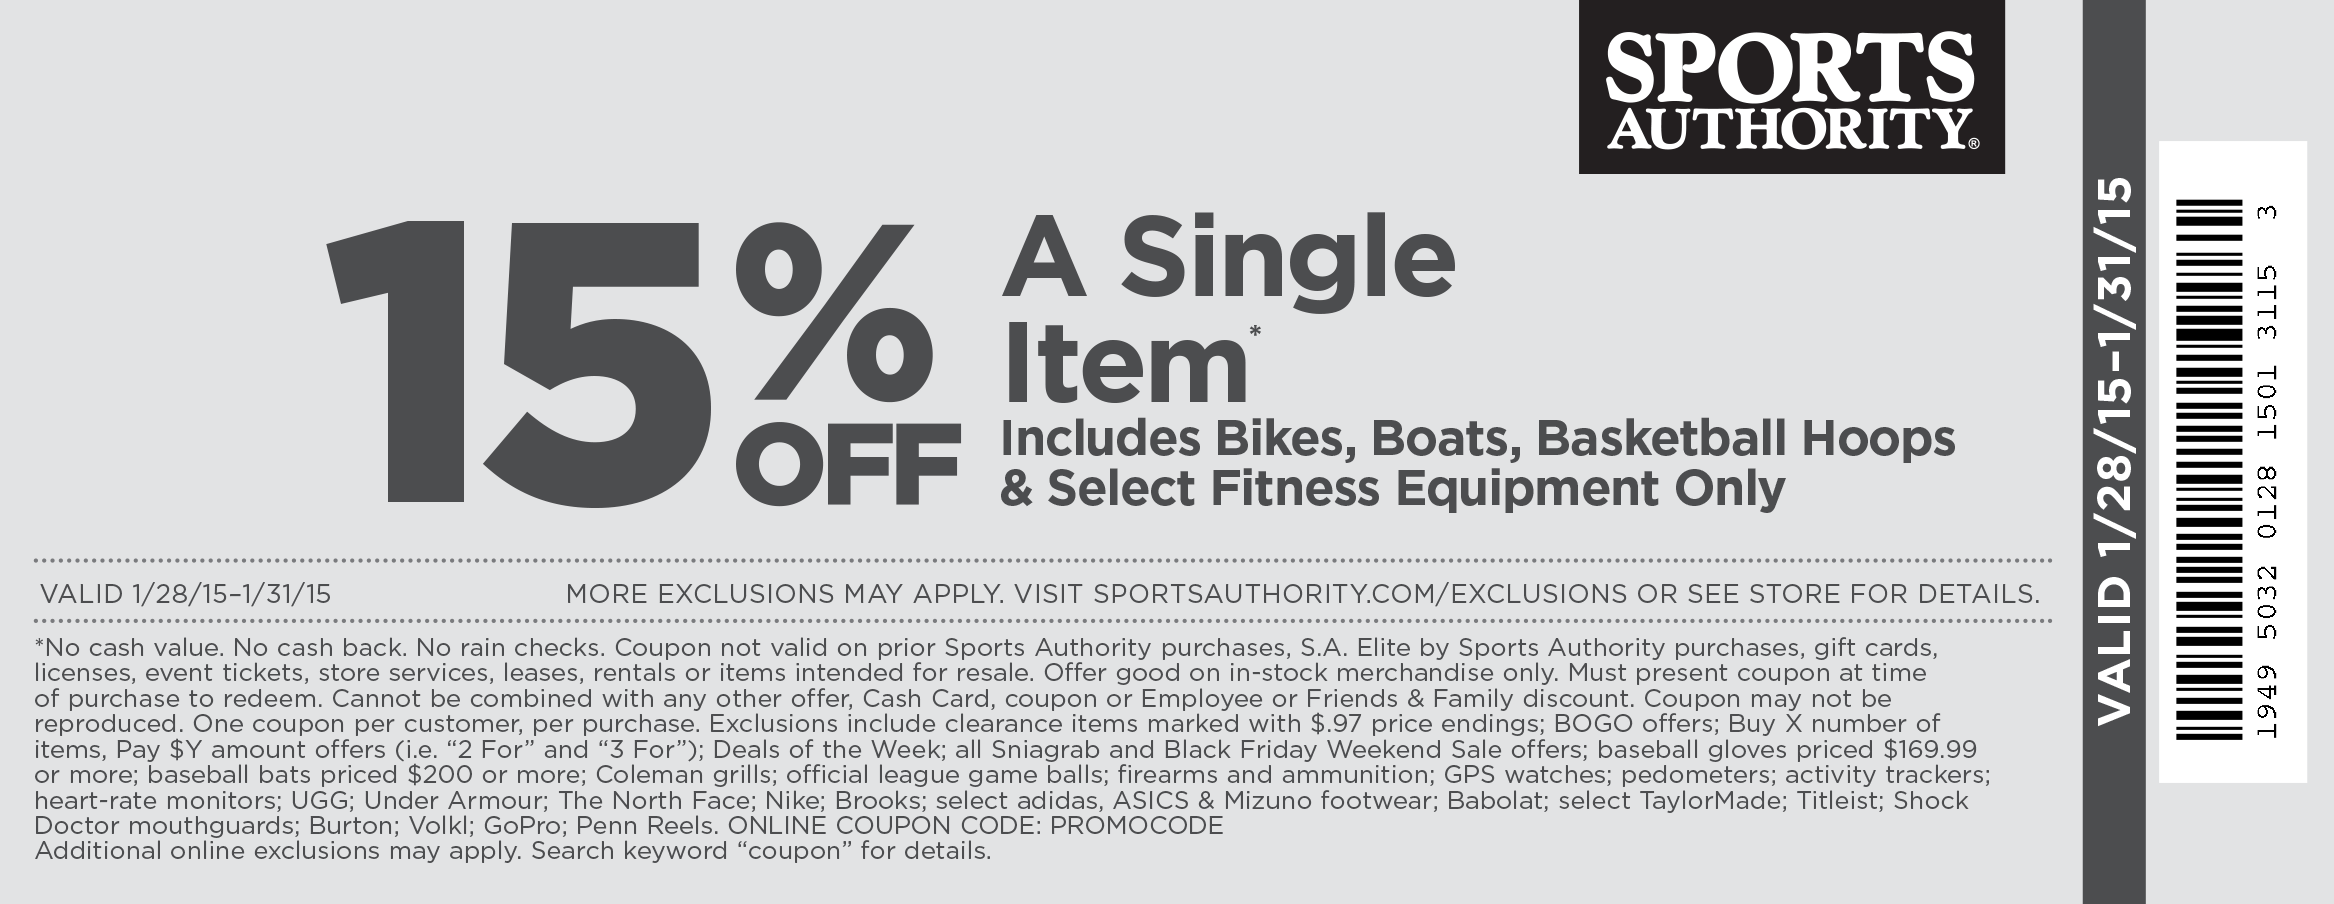 Sports Authority Coupon January 2018 15% off a single item at Sports Authority, or online via promo PROMOCODE